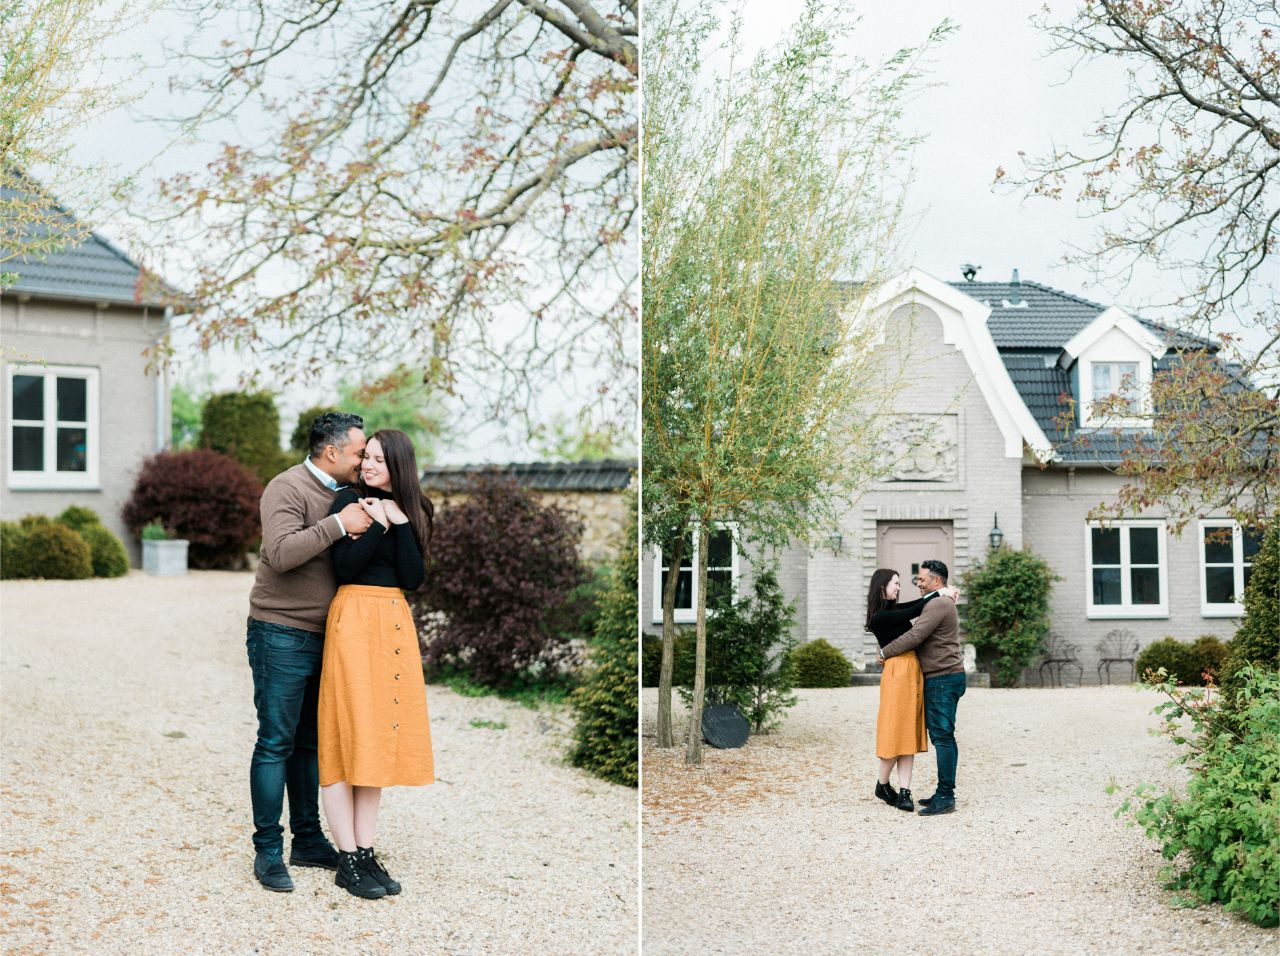 destination_wedding_photographer_europe_valkenburg.jpg